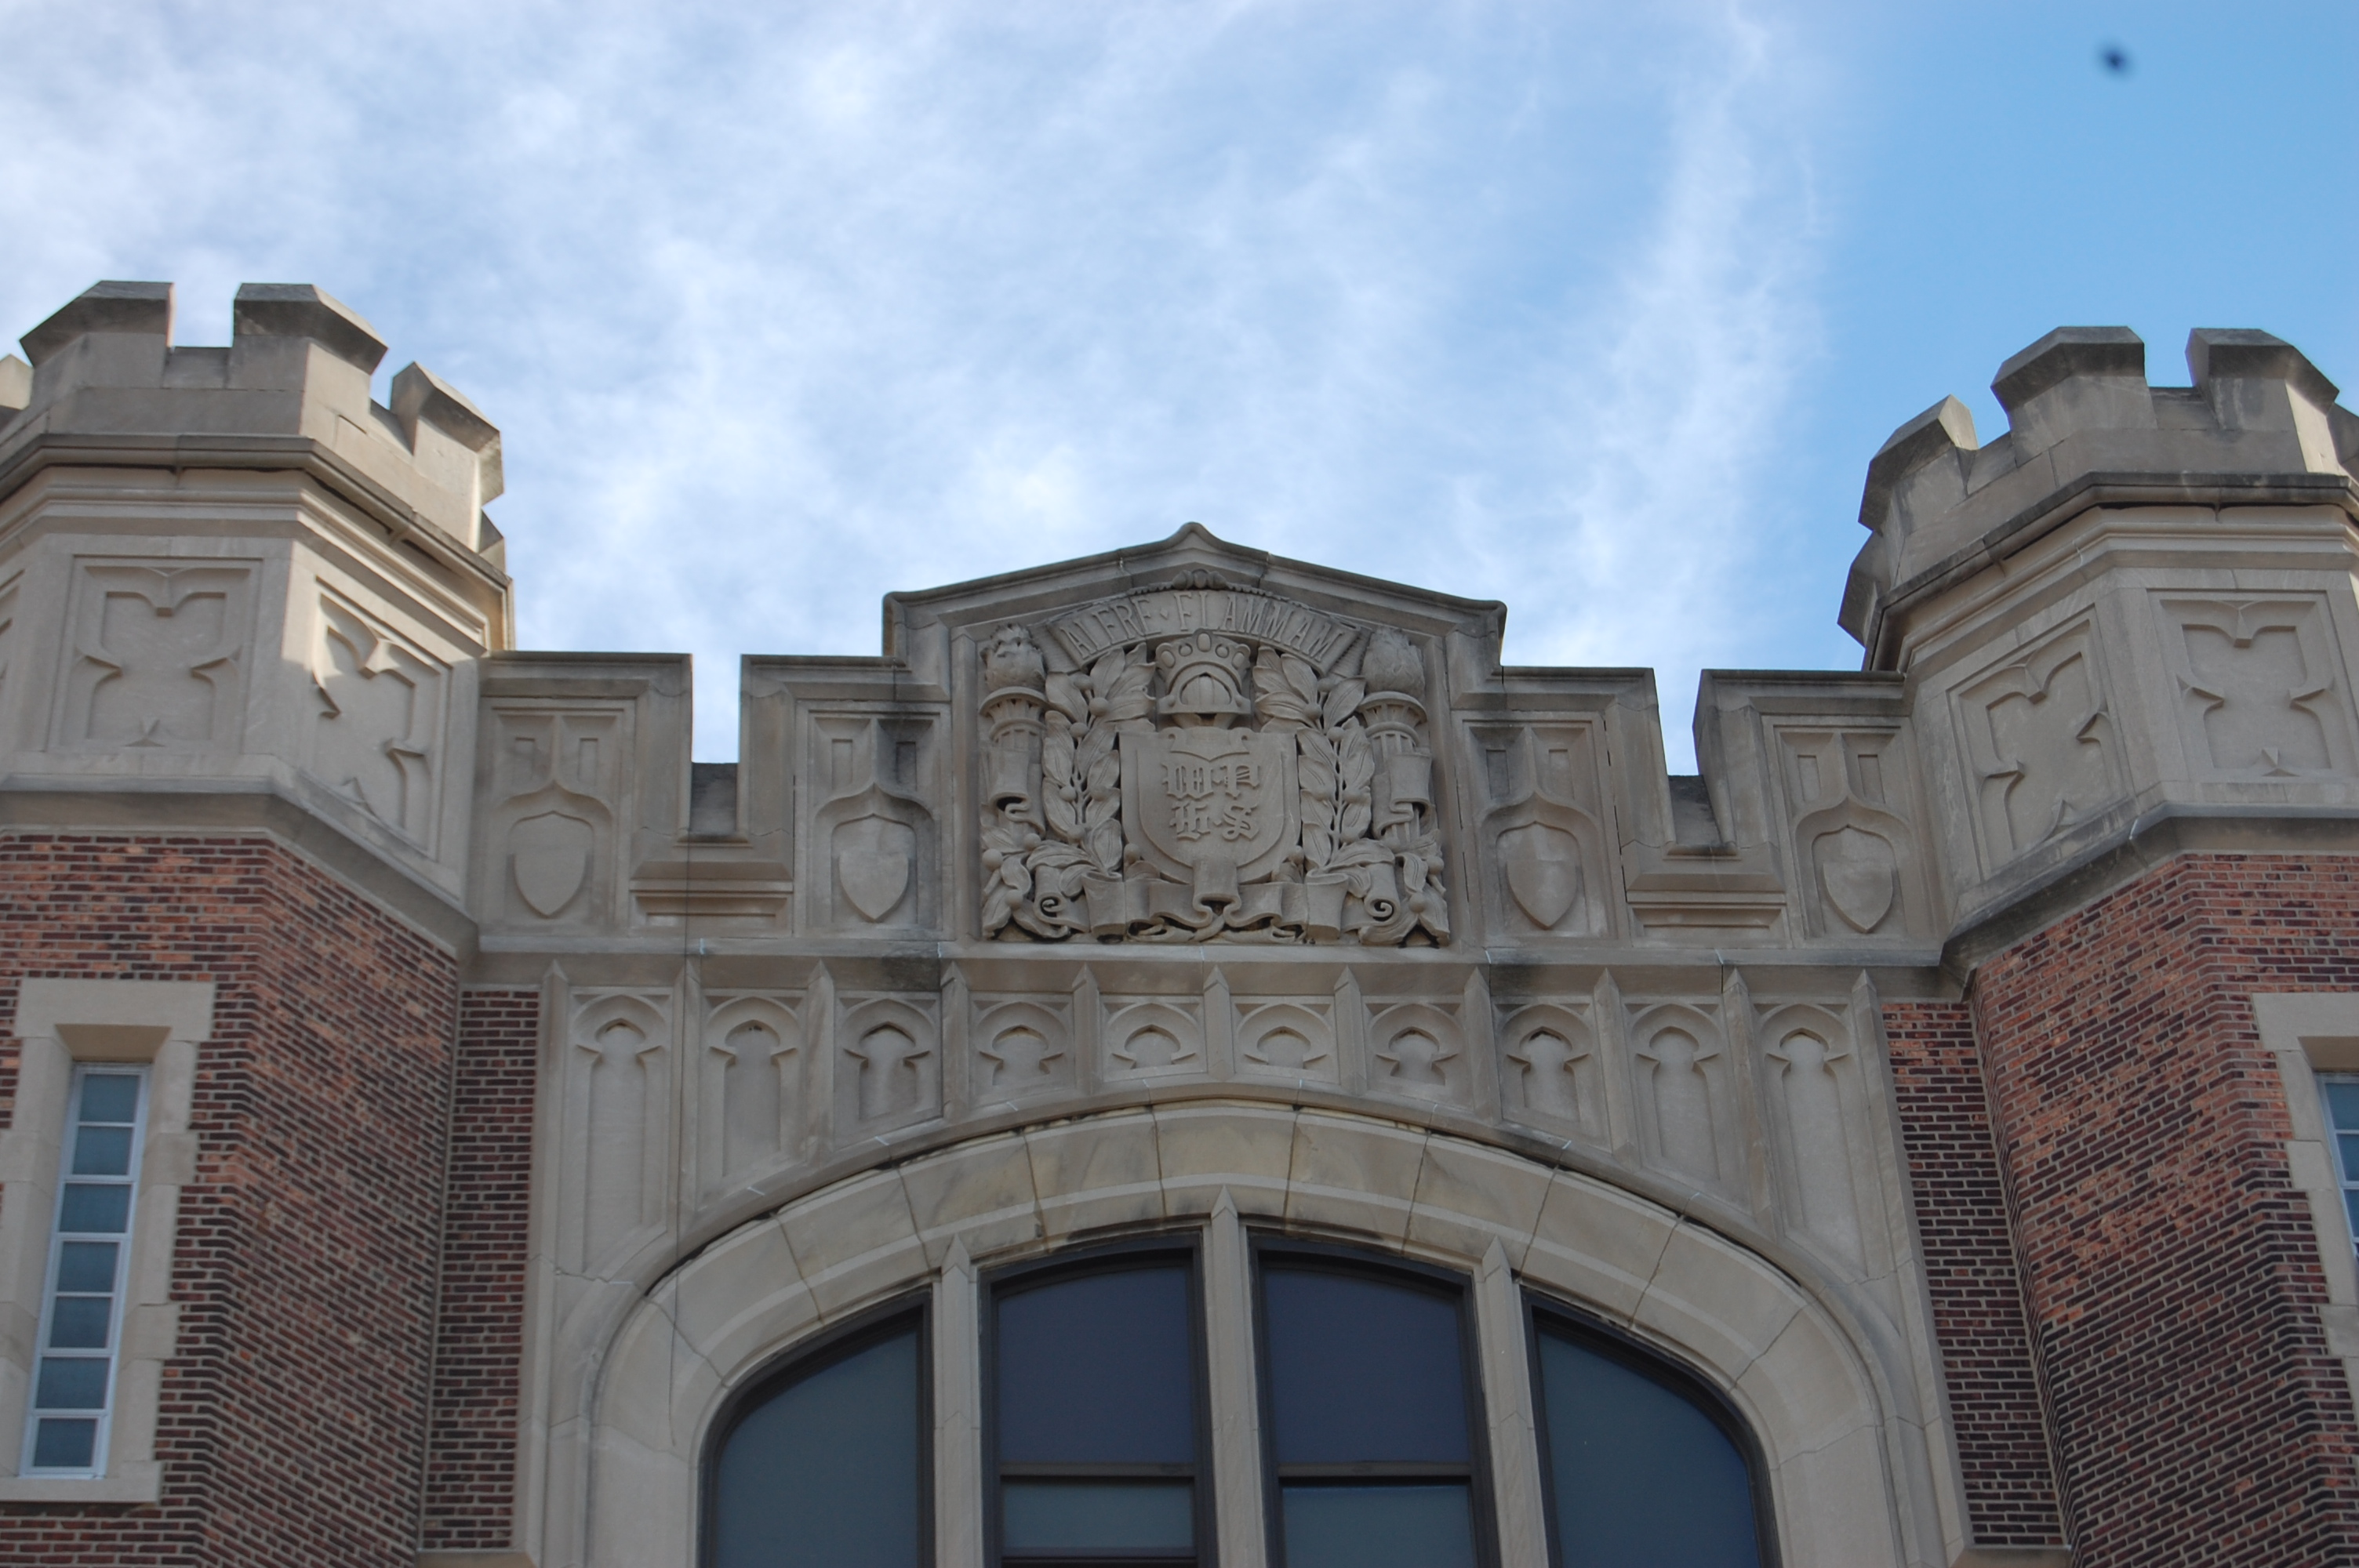 Turrets atop the building's western entrance.